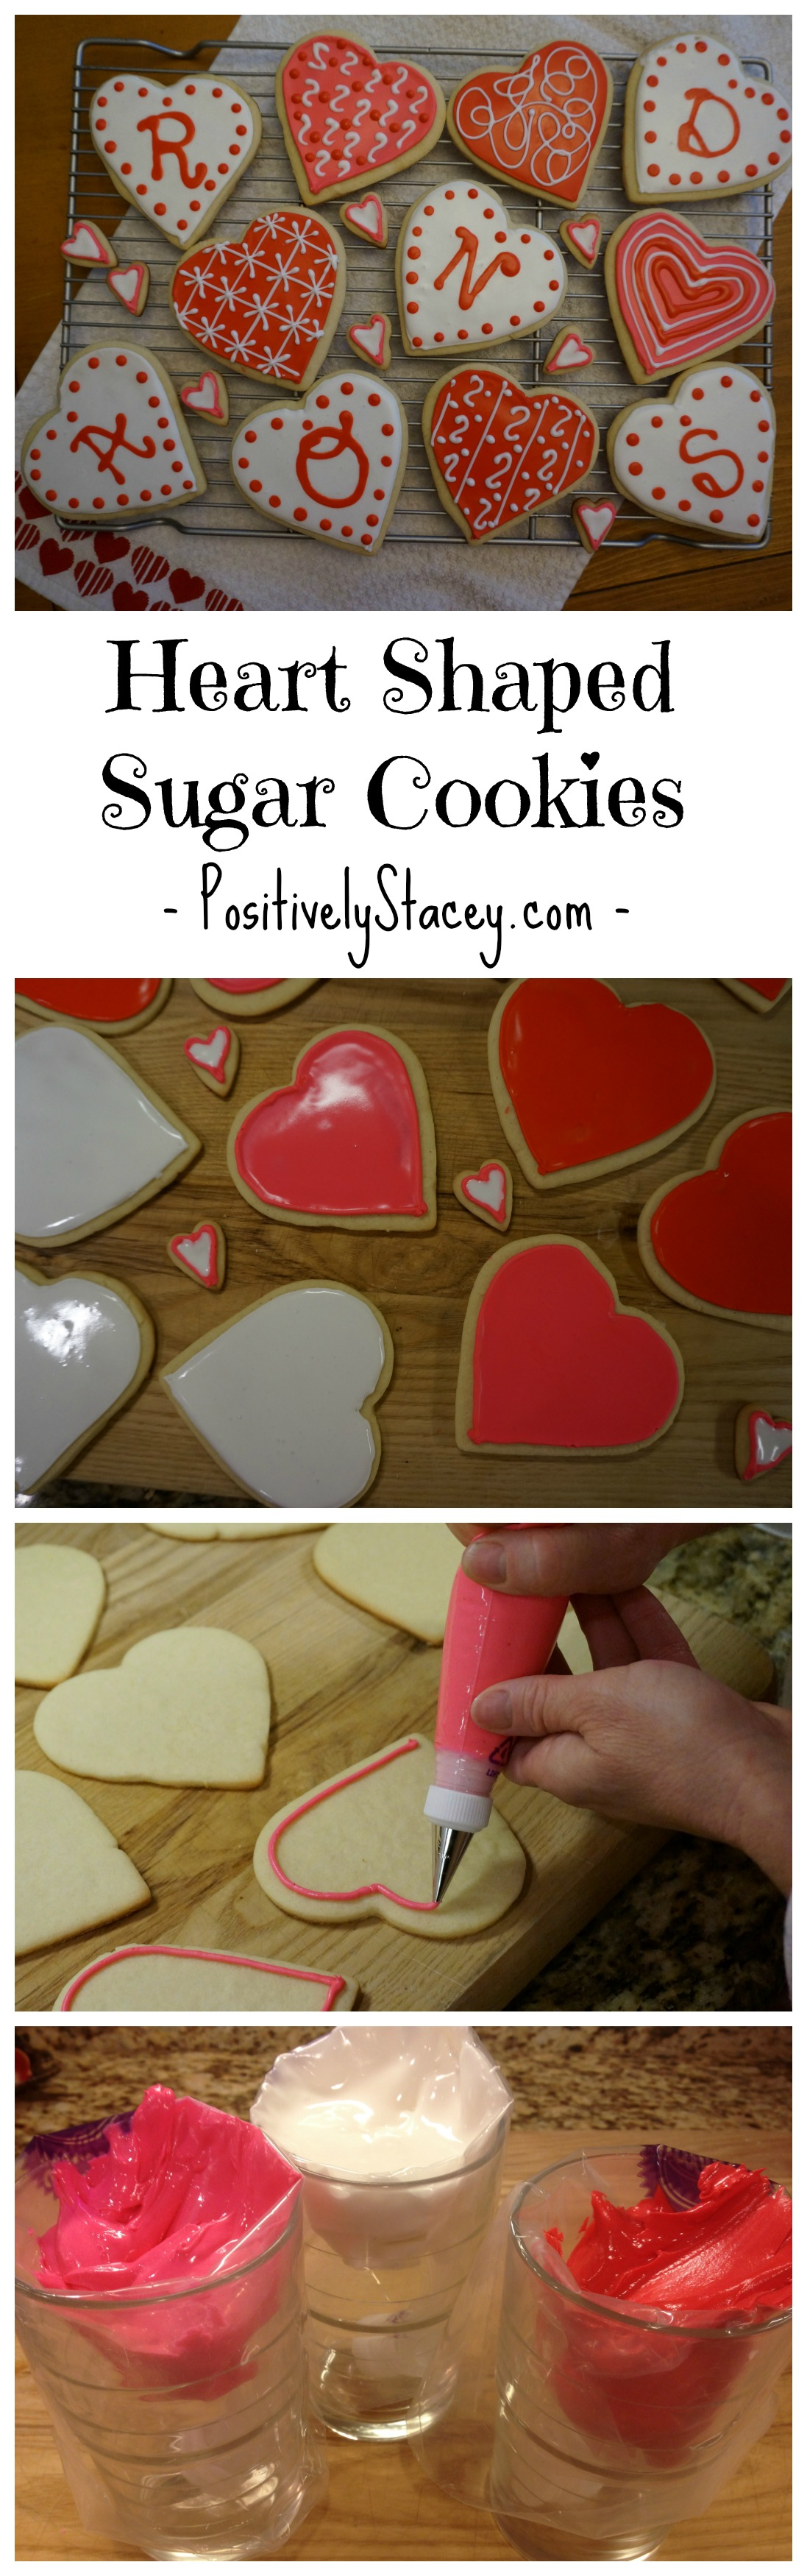 Heart Shaped Sugar Cookies - Perfect for Valentine's Day or for any day that you want to share a bit of sweet love! <3